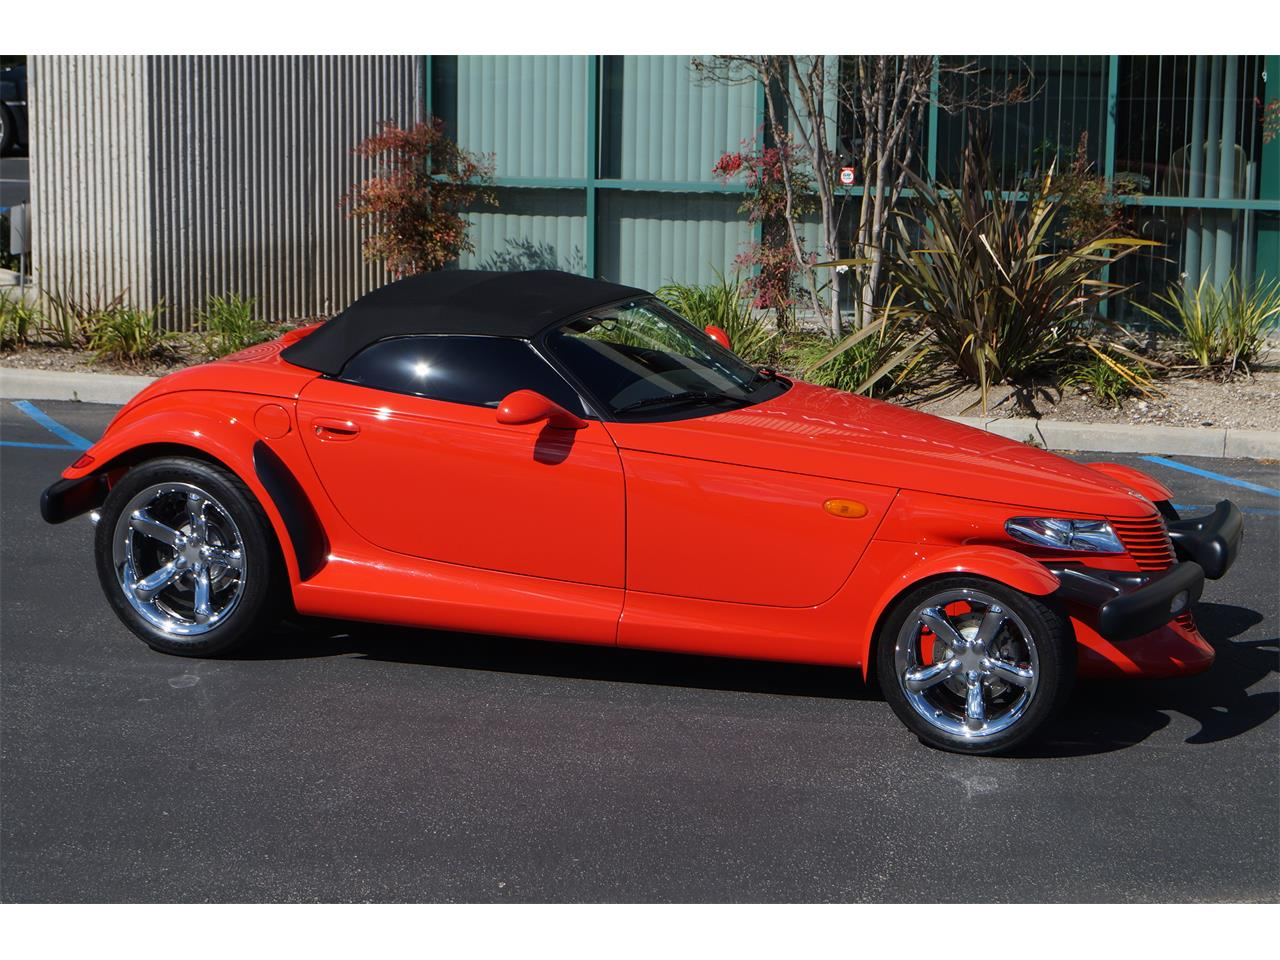 2000 Plymouth Prowler for sale in Thousand Oaks, CA – photo 9